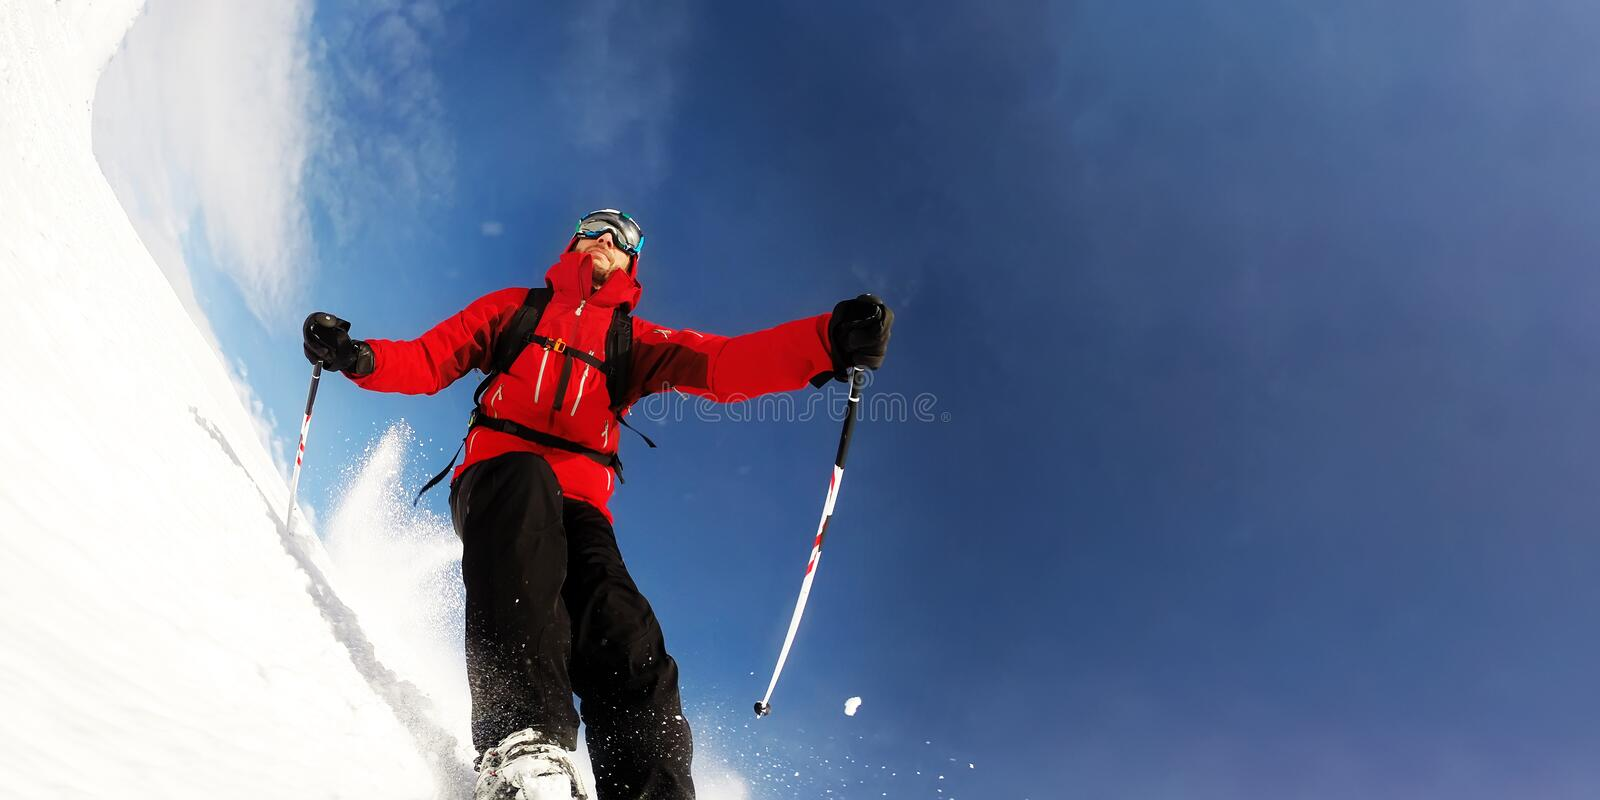 Skier in mountains performs a high speed turn on a ski piste royalty free stock photography